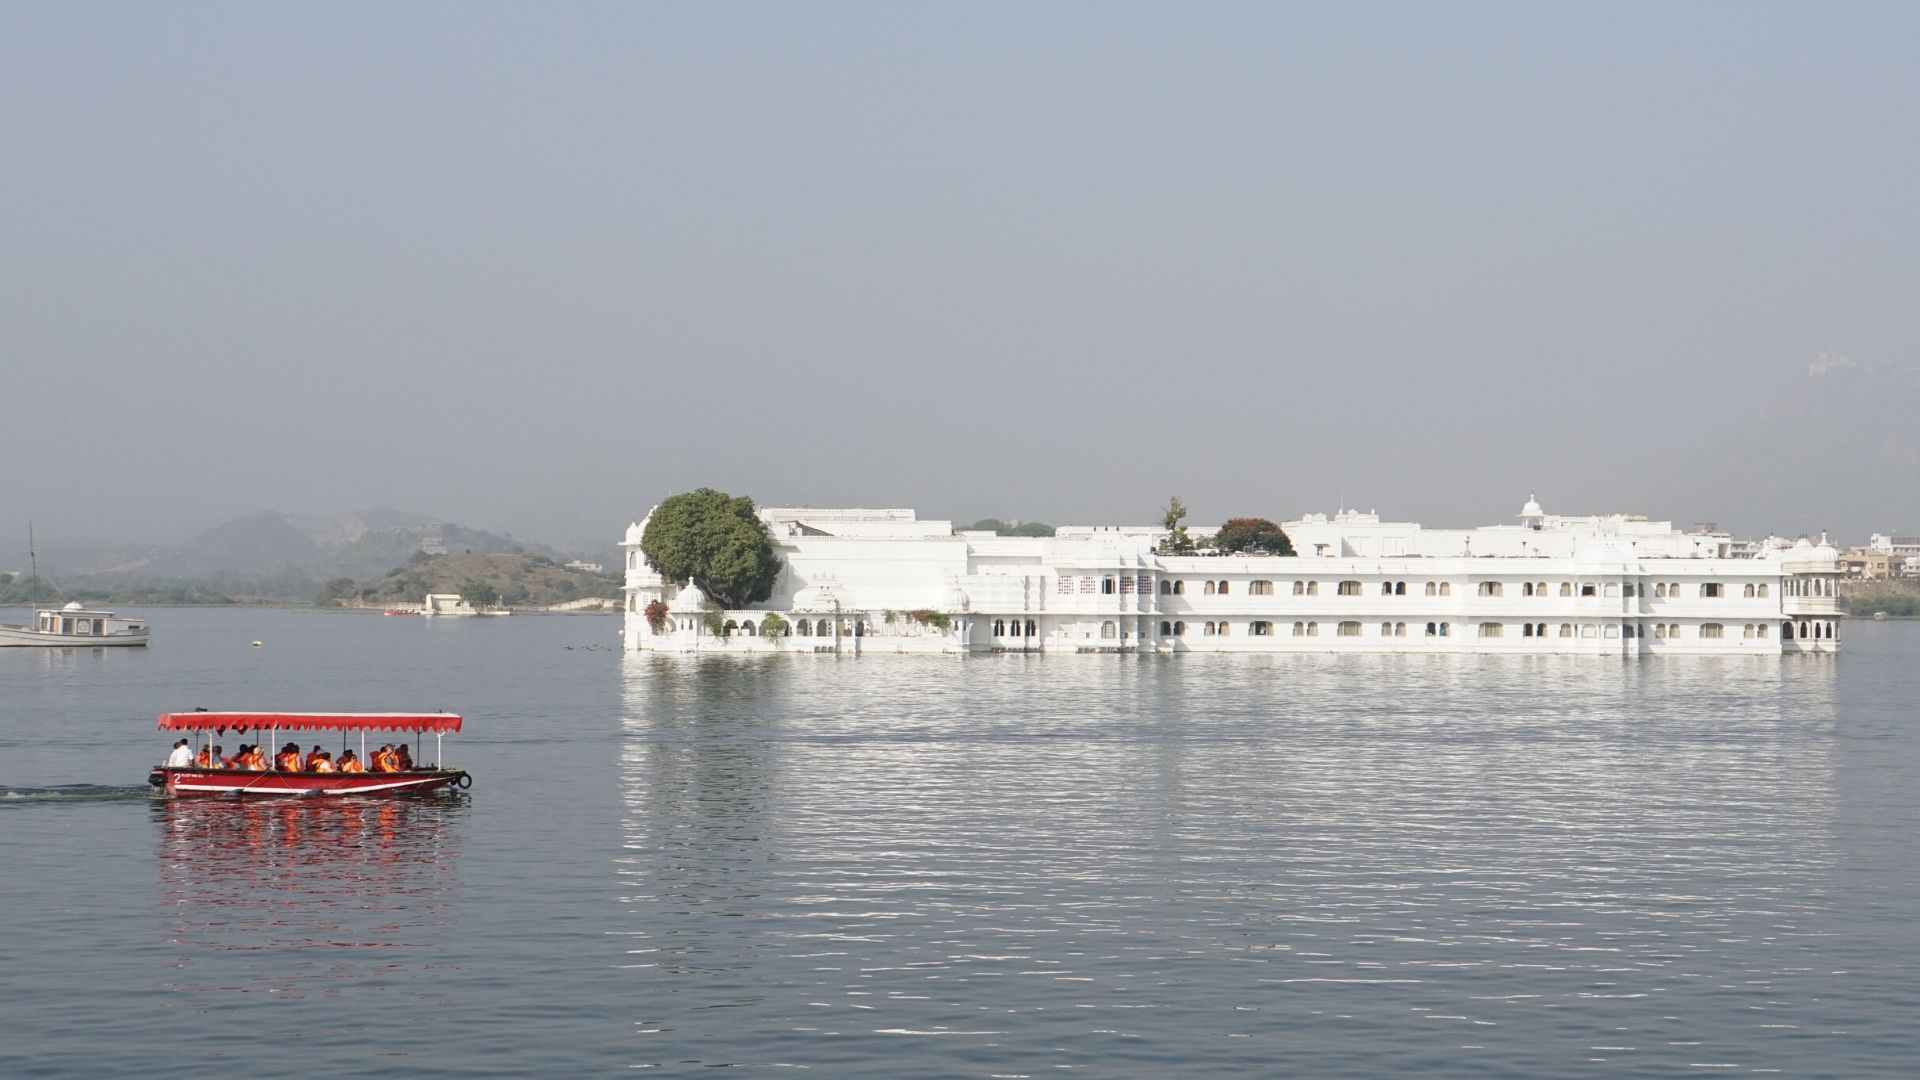 White palace on water